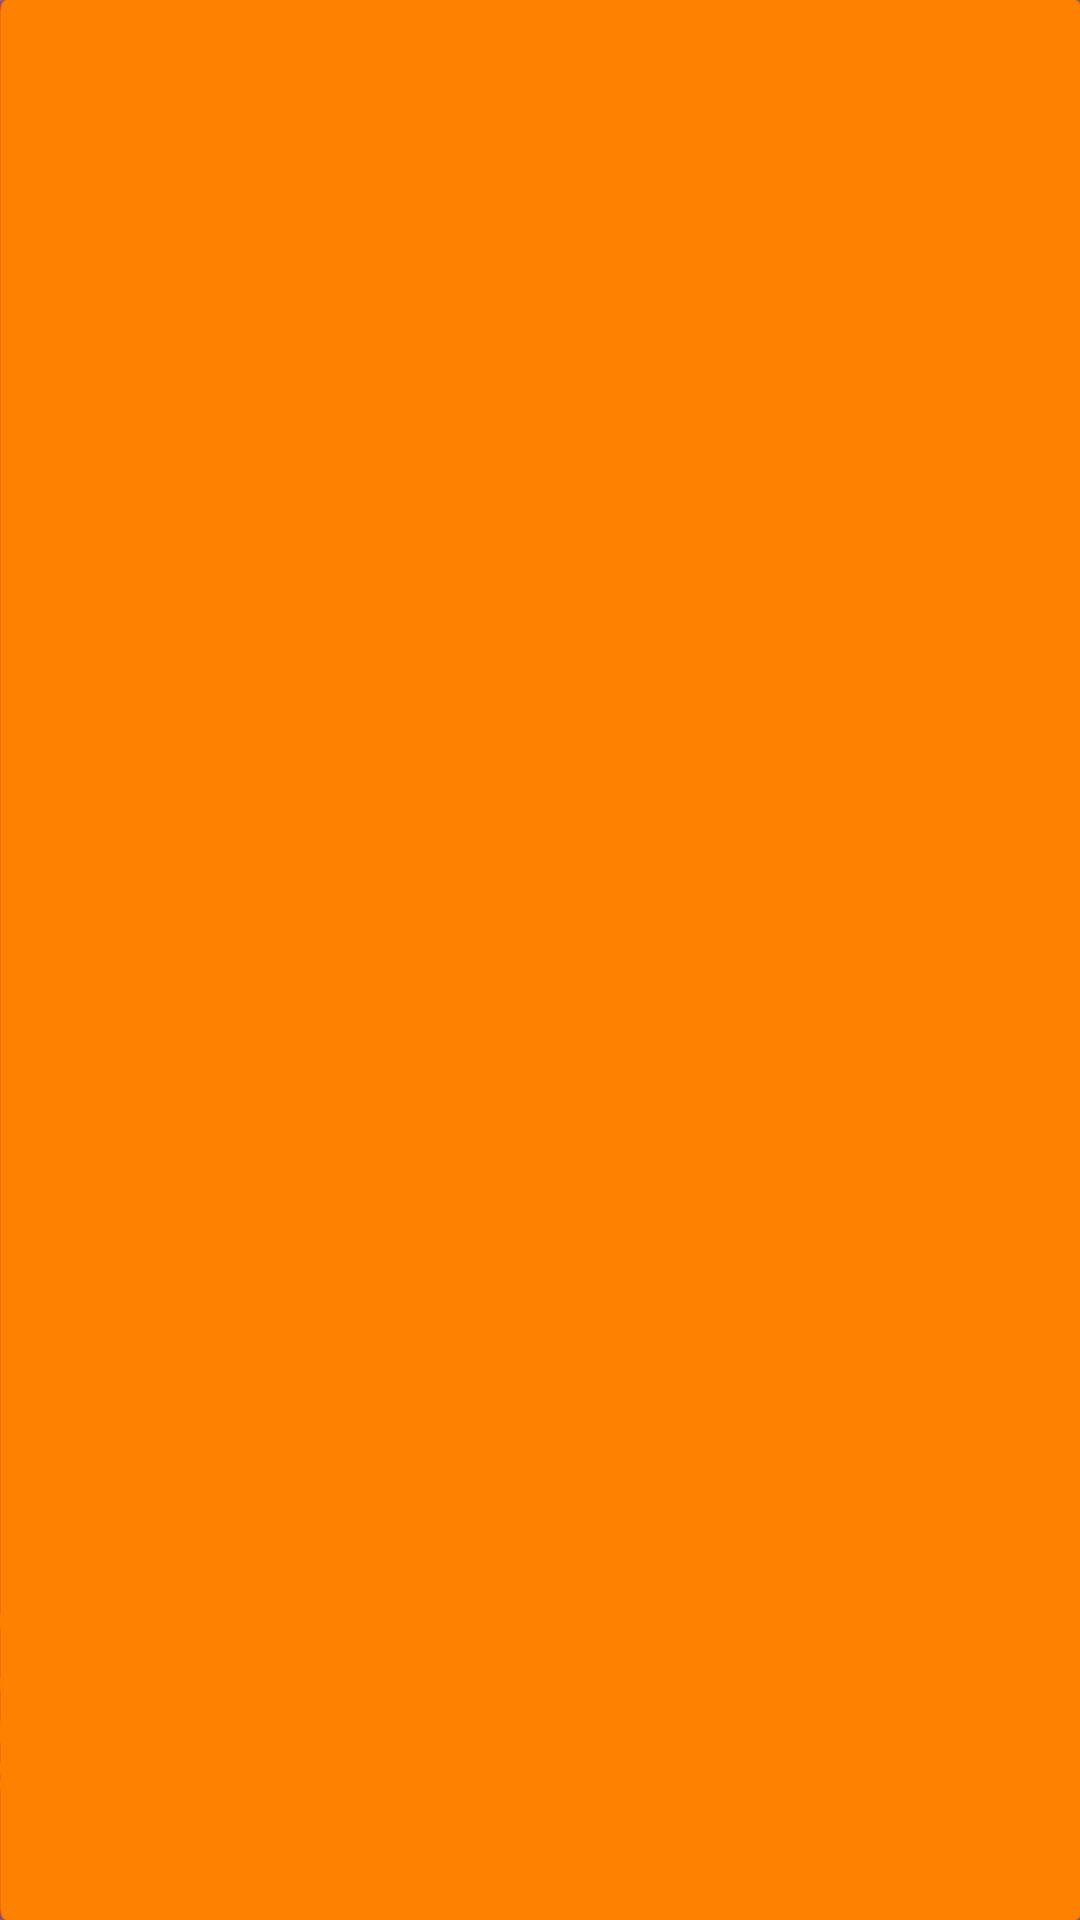 Solid Plain Orange Wallpaper iPhone